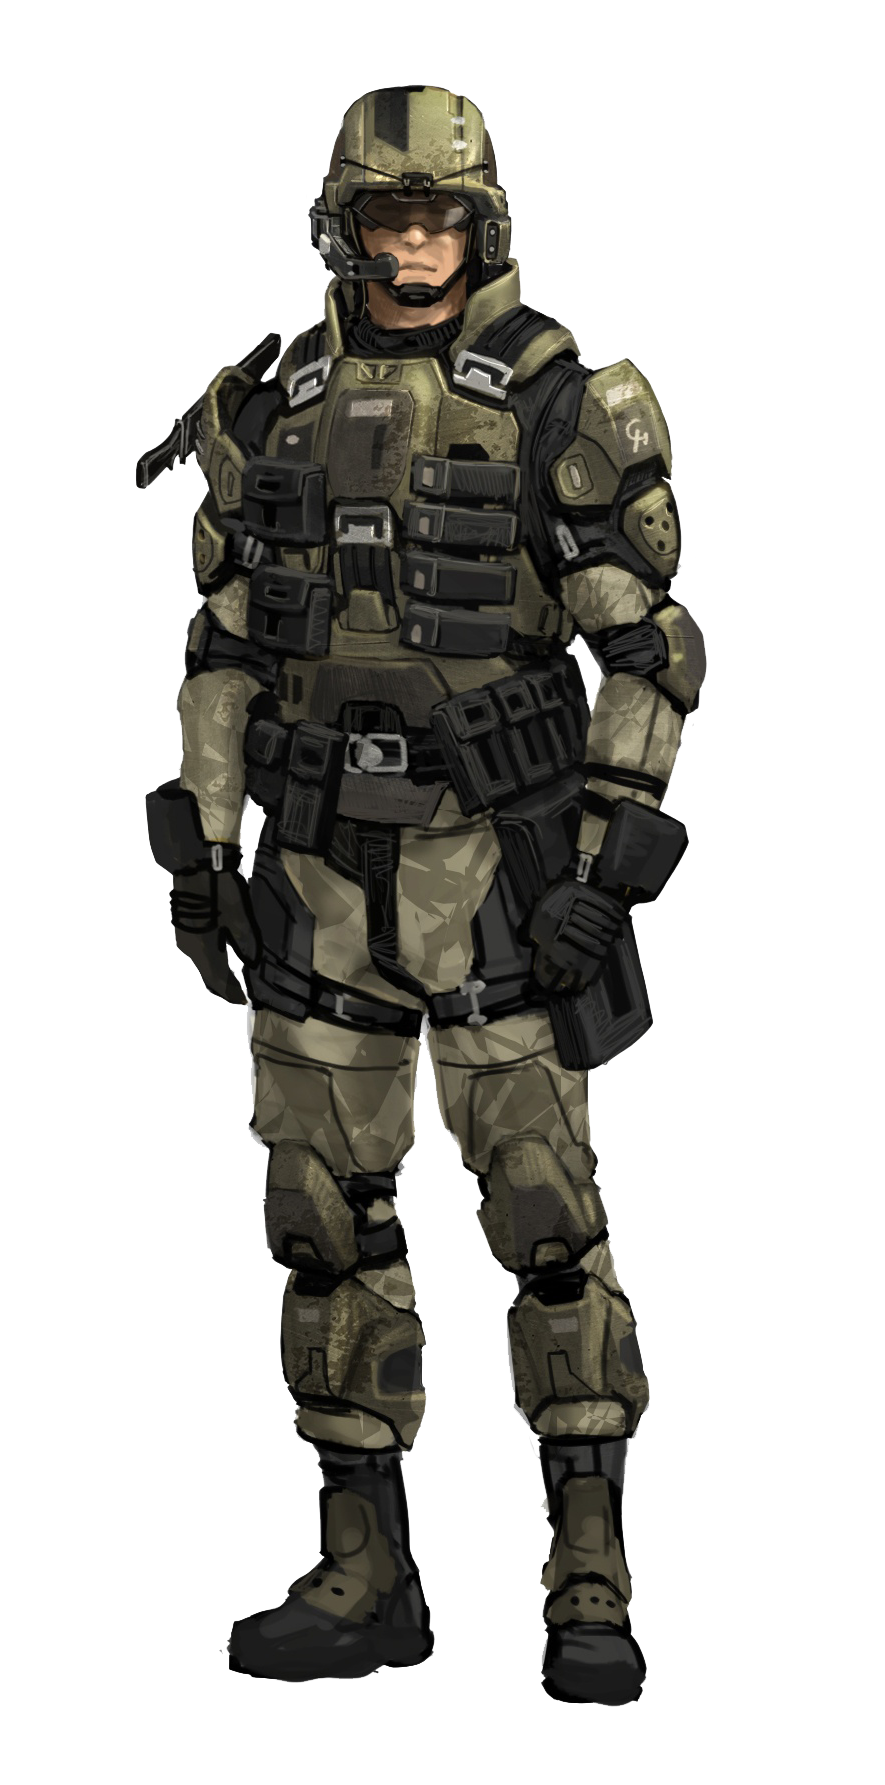 jpg freeuse library aliens colonial marines armor